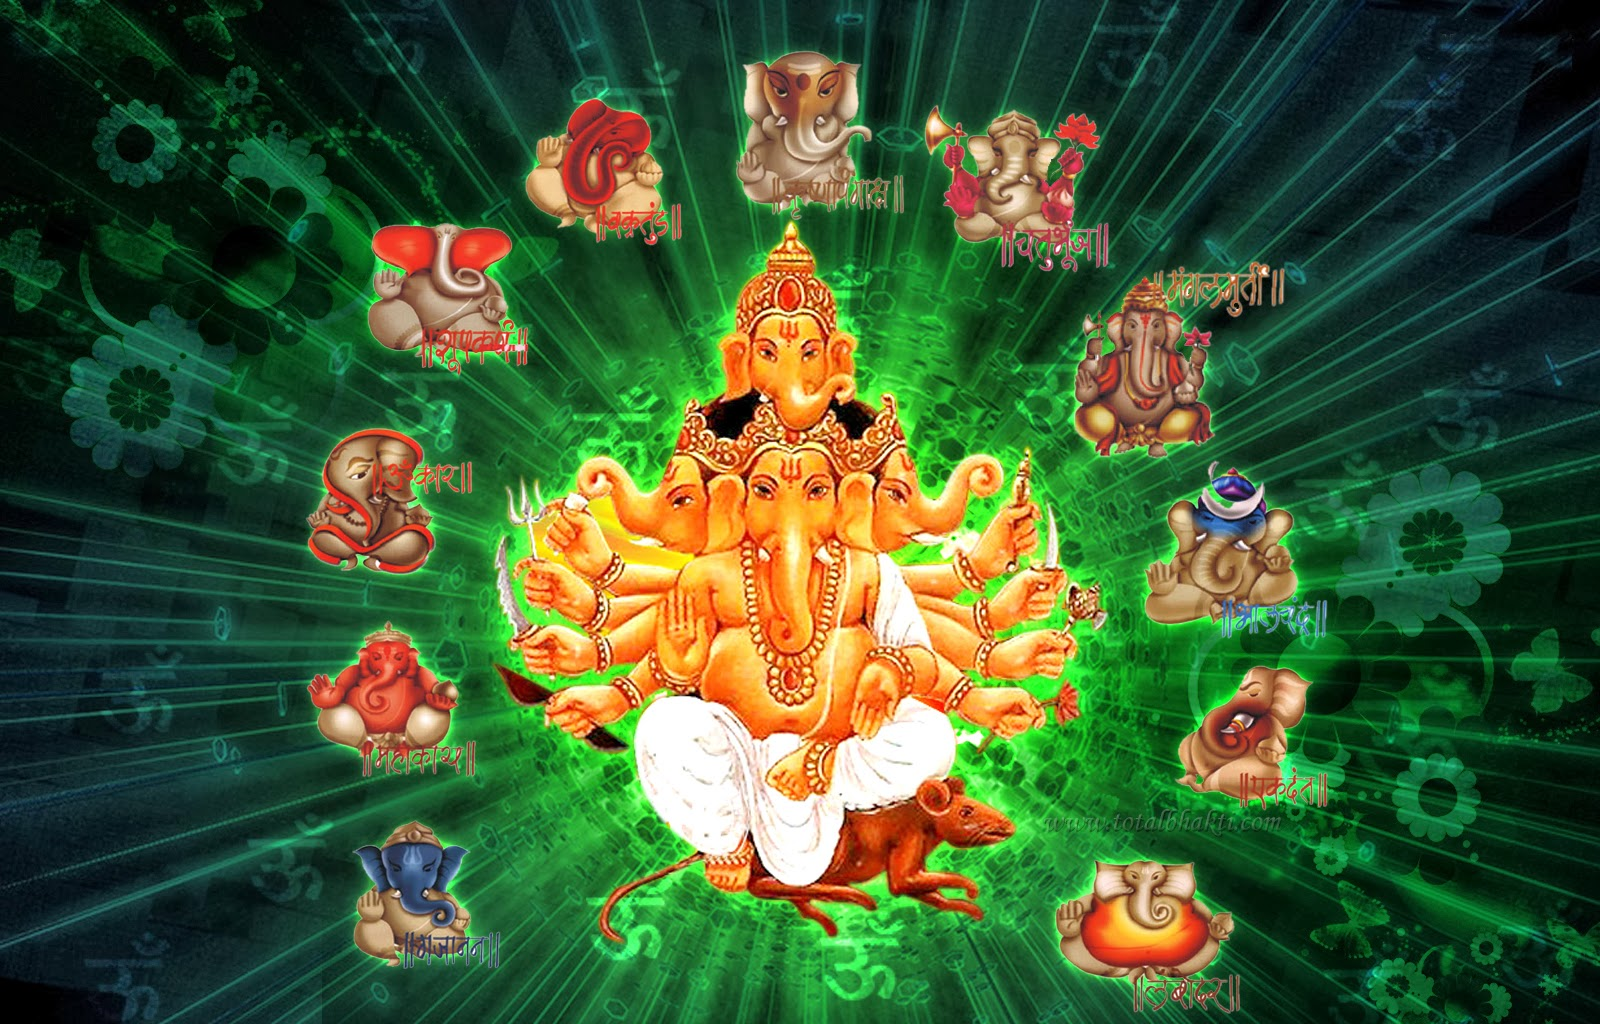 Lord Ganesha Pictures Hd: Latest Lord Ganesh Hd Wallpapers